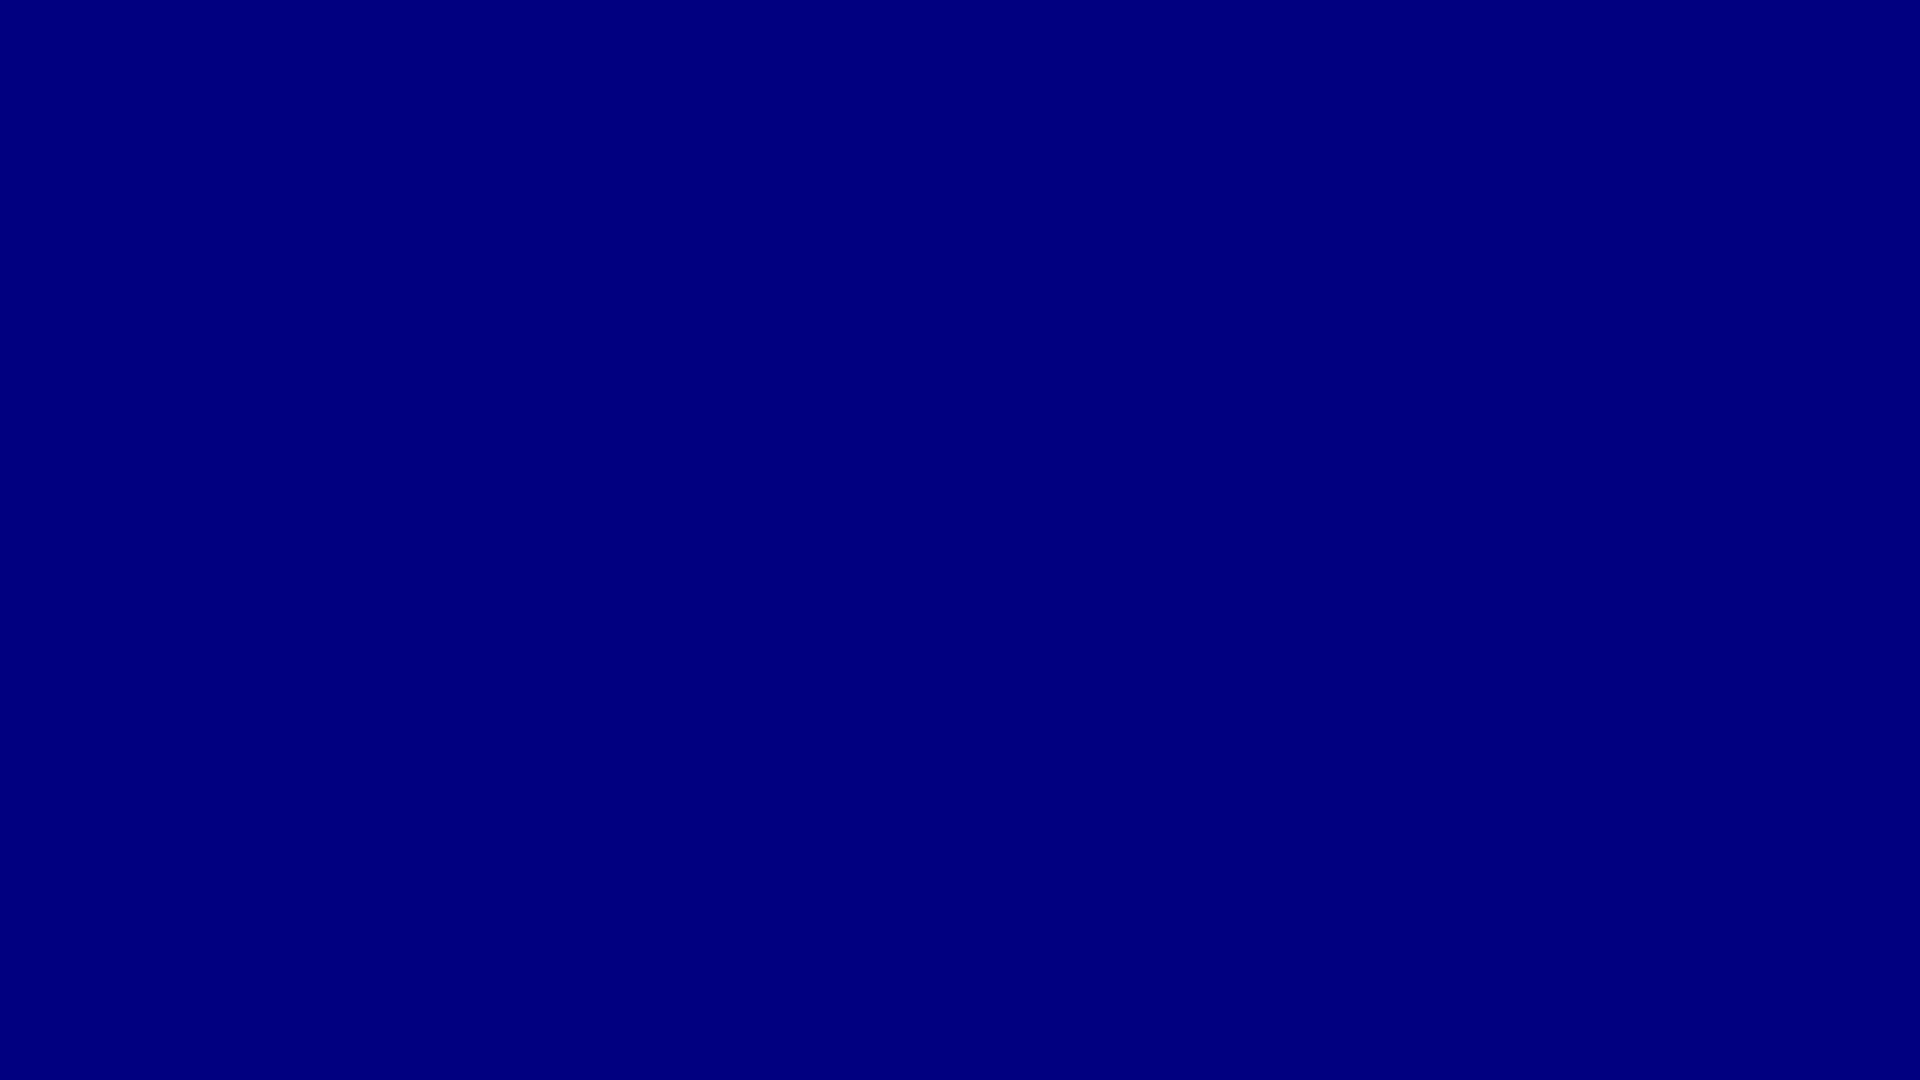 Navy Blue Background Related Keywords amp Suggestions   Navy 1920x1080